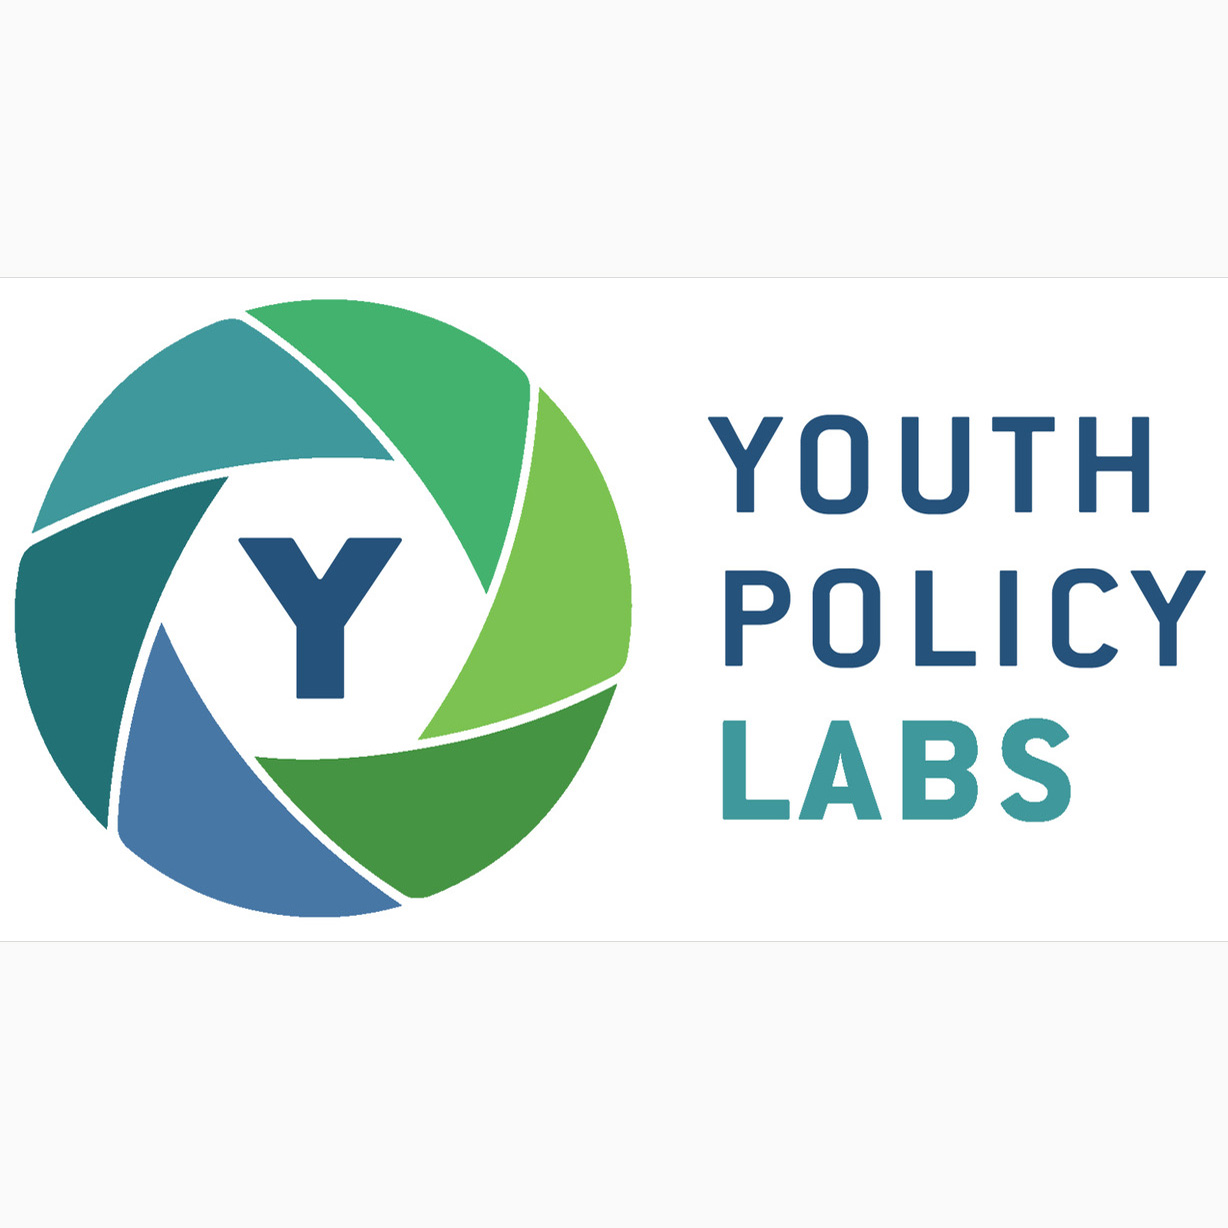 Youth Policy Labs